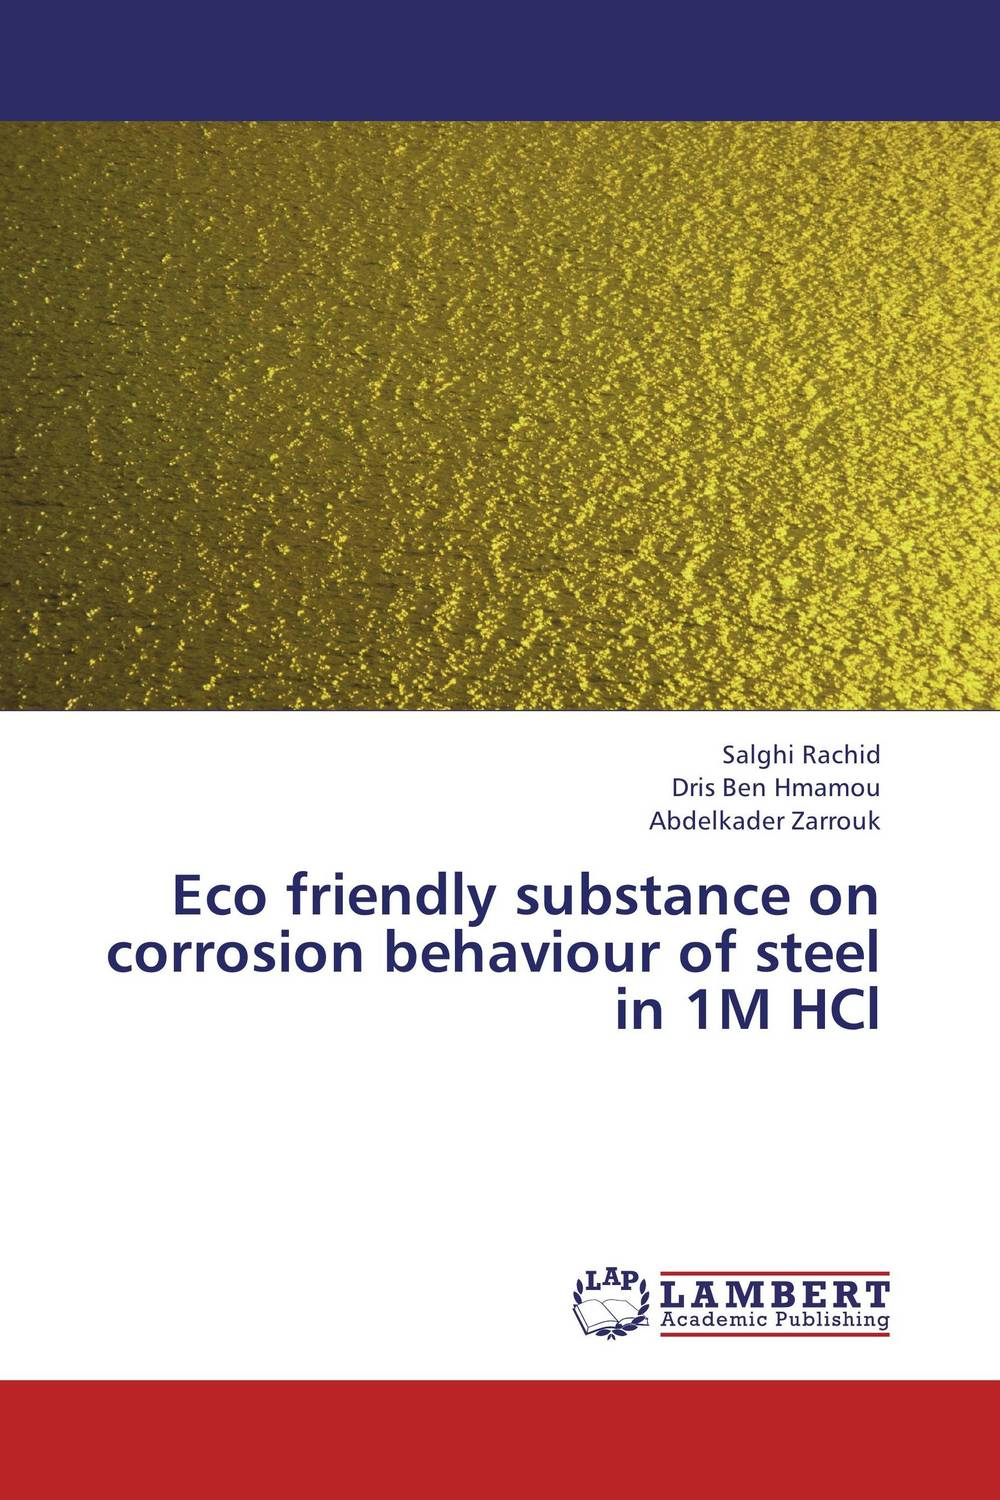 Eco friendly substance on corrosion behaviour of steel in 1M HCl eco friendly dyeing of silk with natural dye